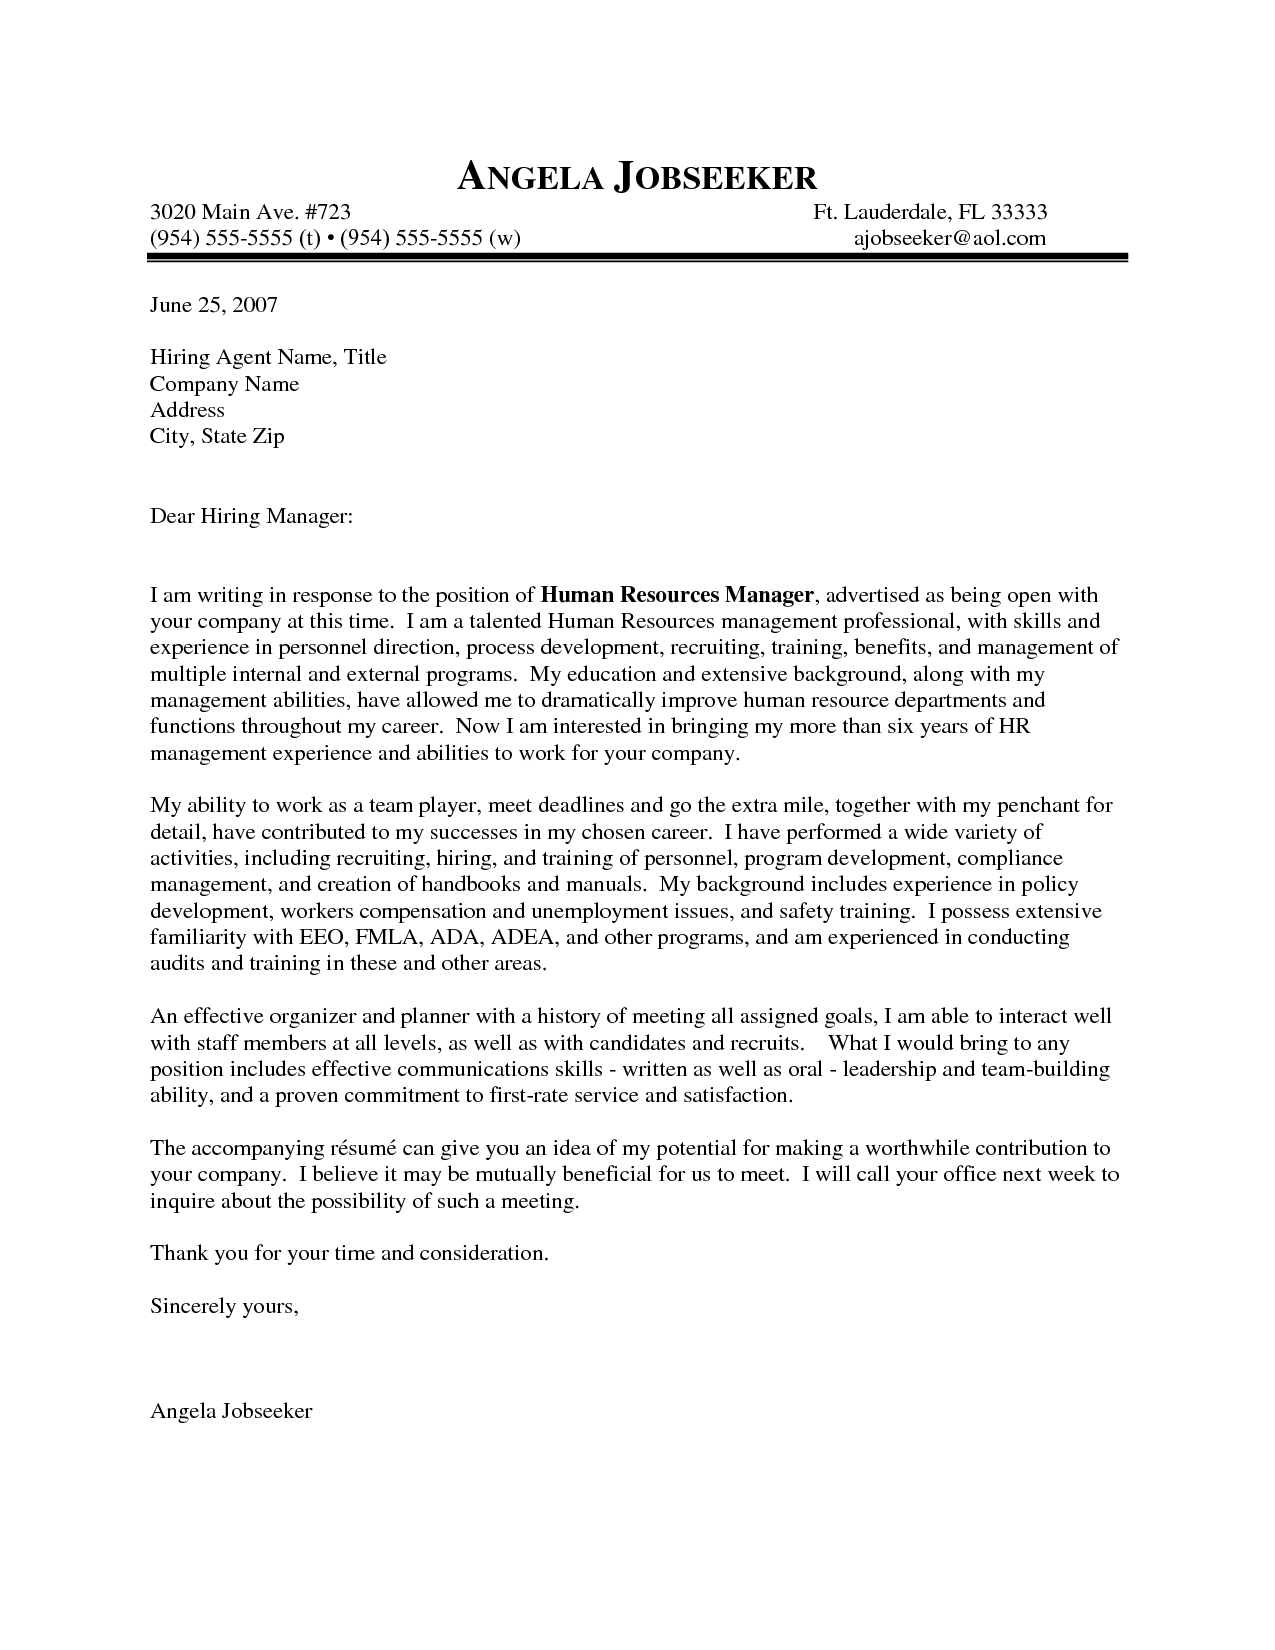 outstanding cover letter examples  hr manager cover letter  also good cover letter examples